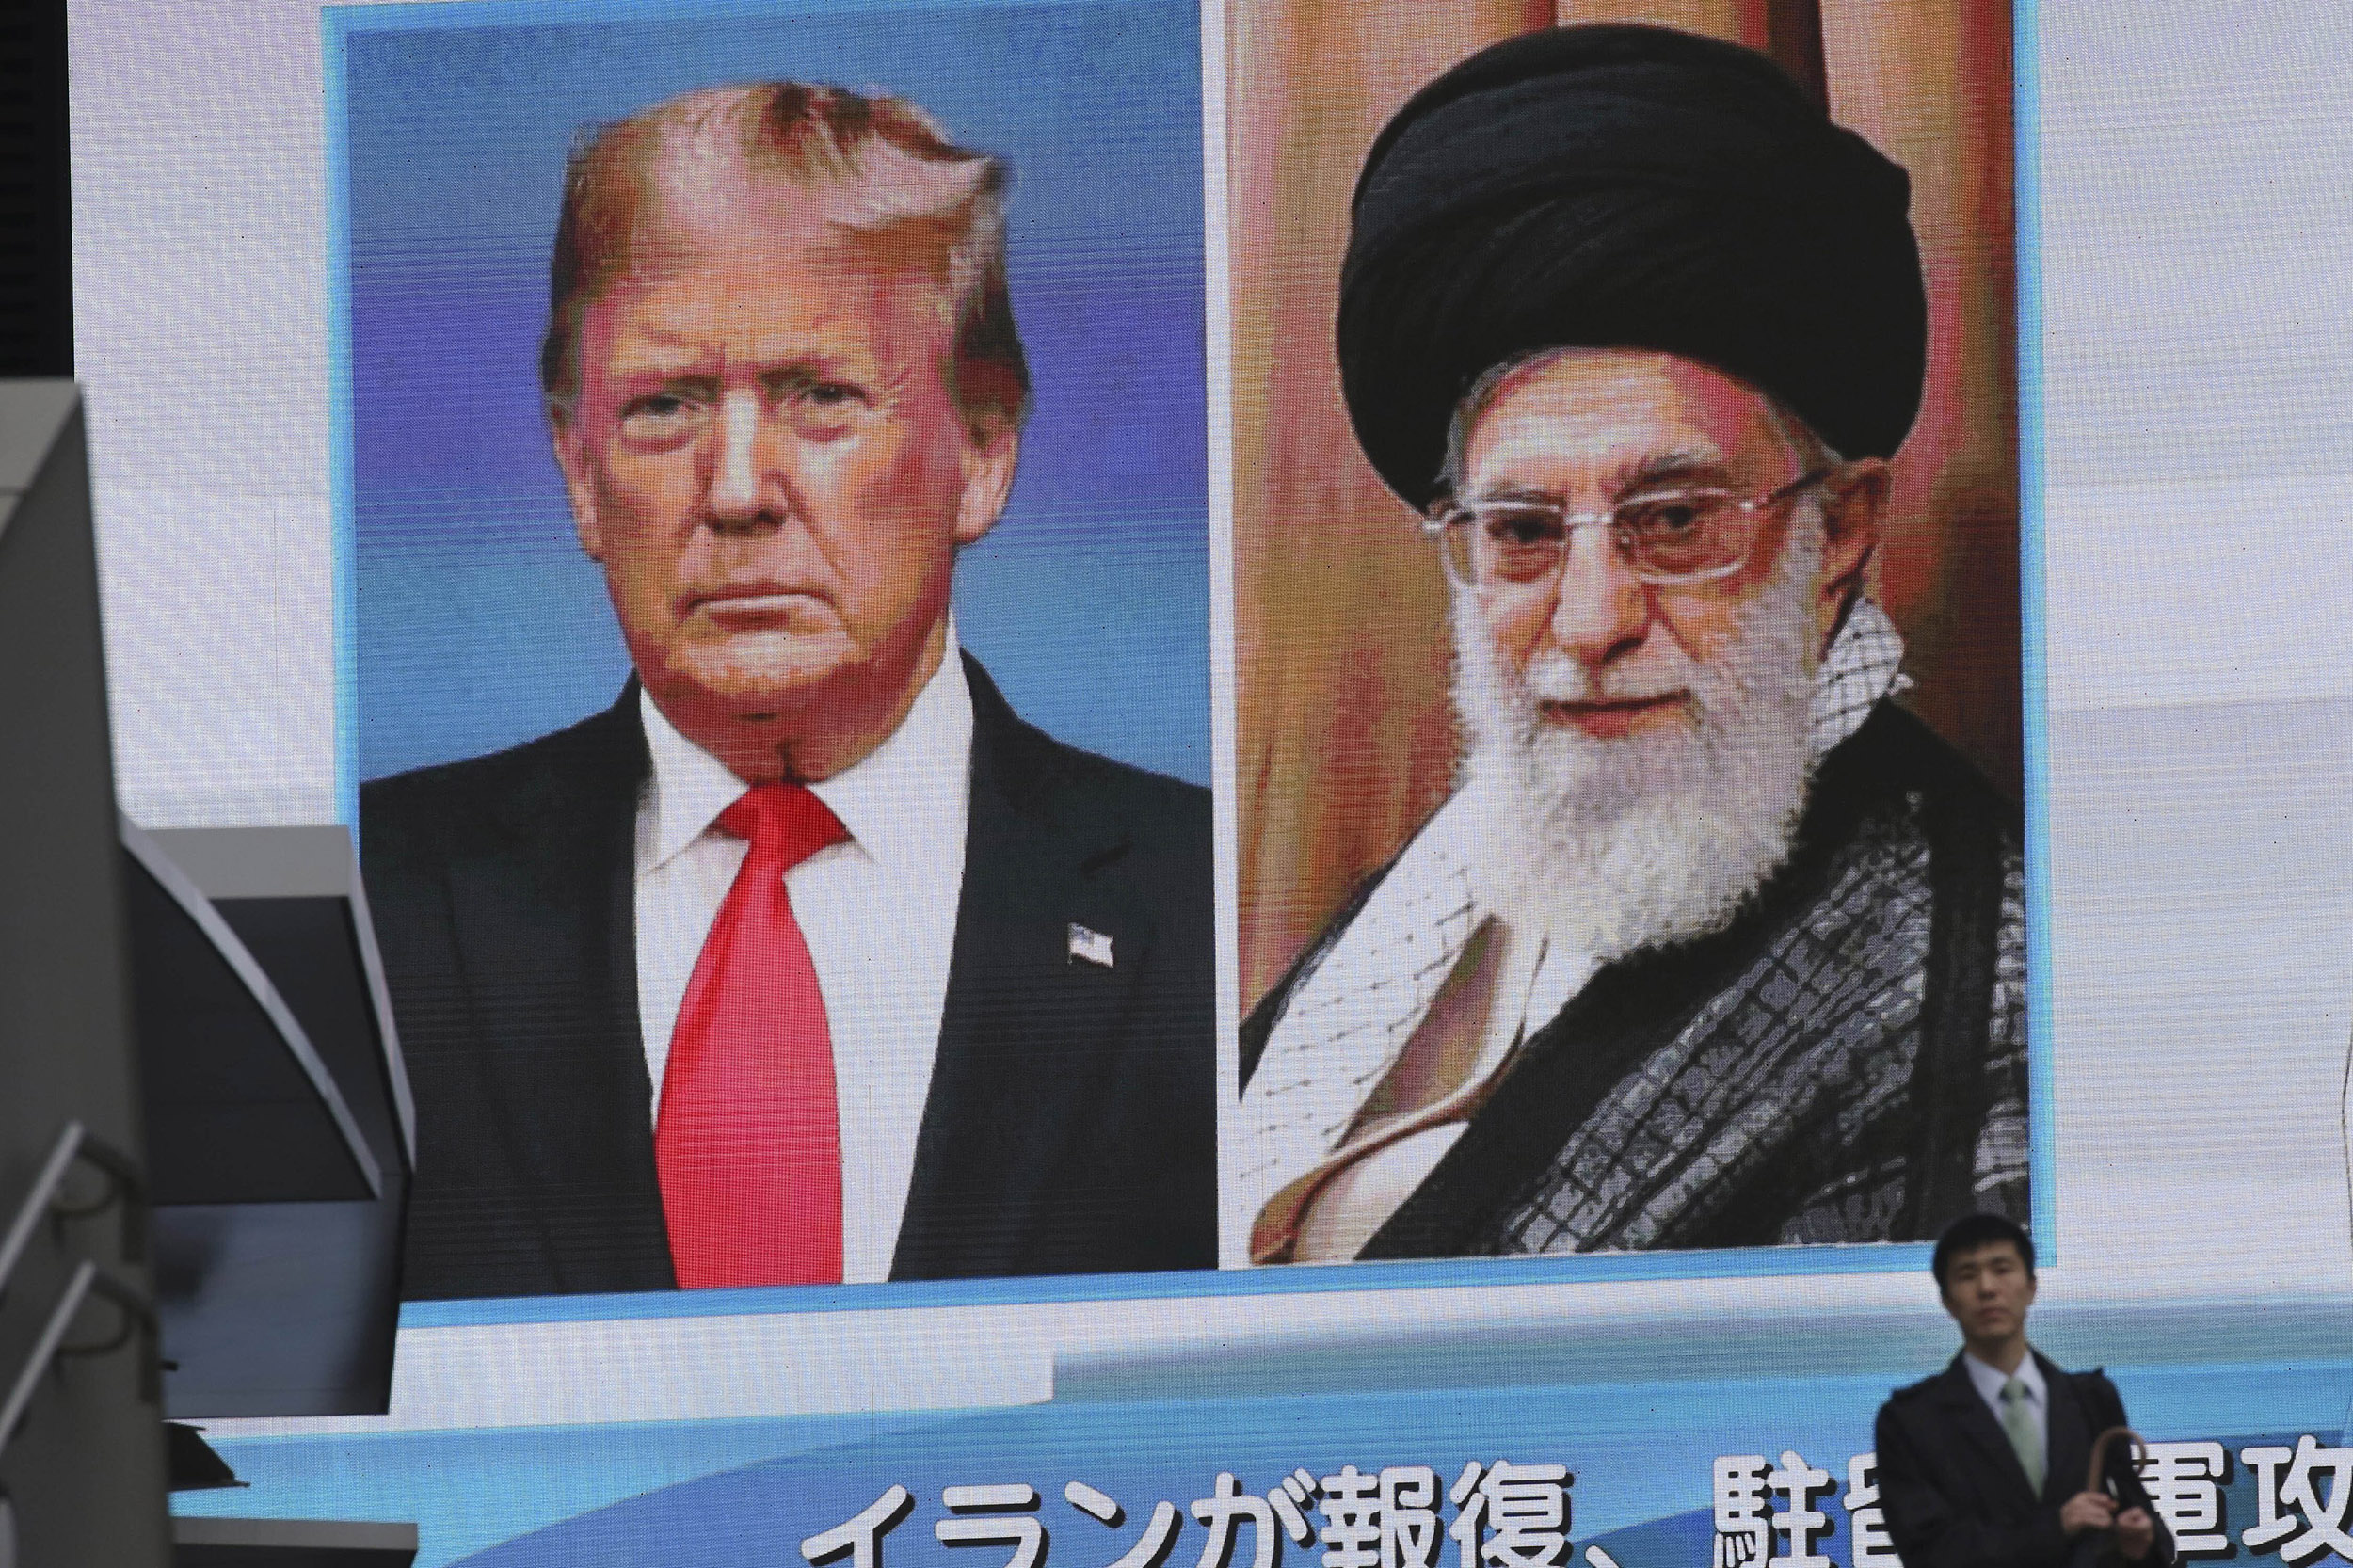 Iran leaves an off-ramp, and Trump seems inclined to take it